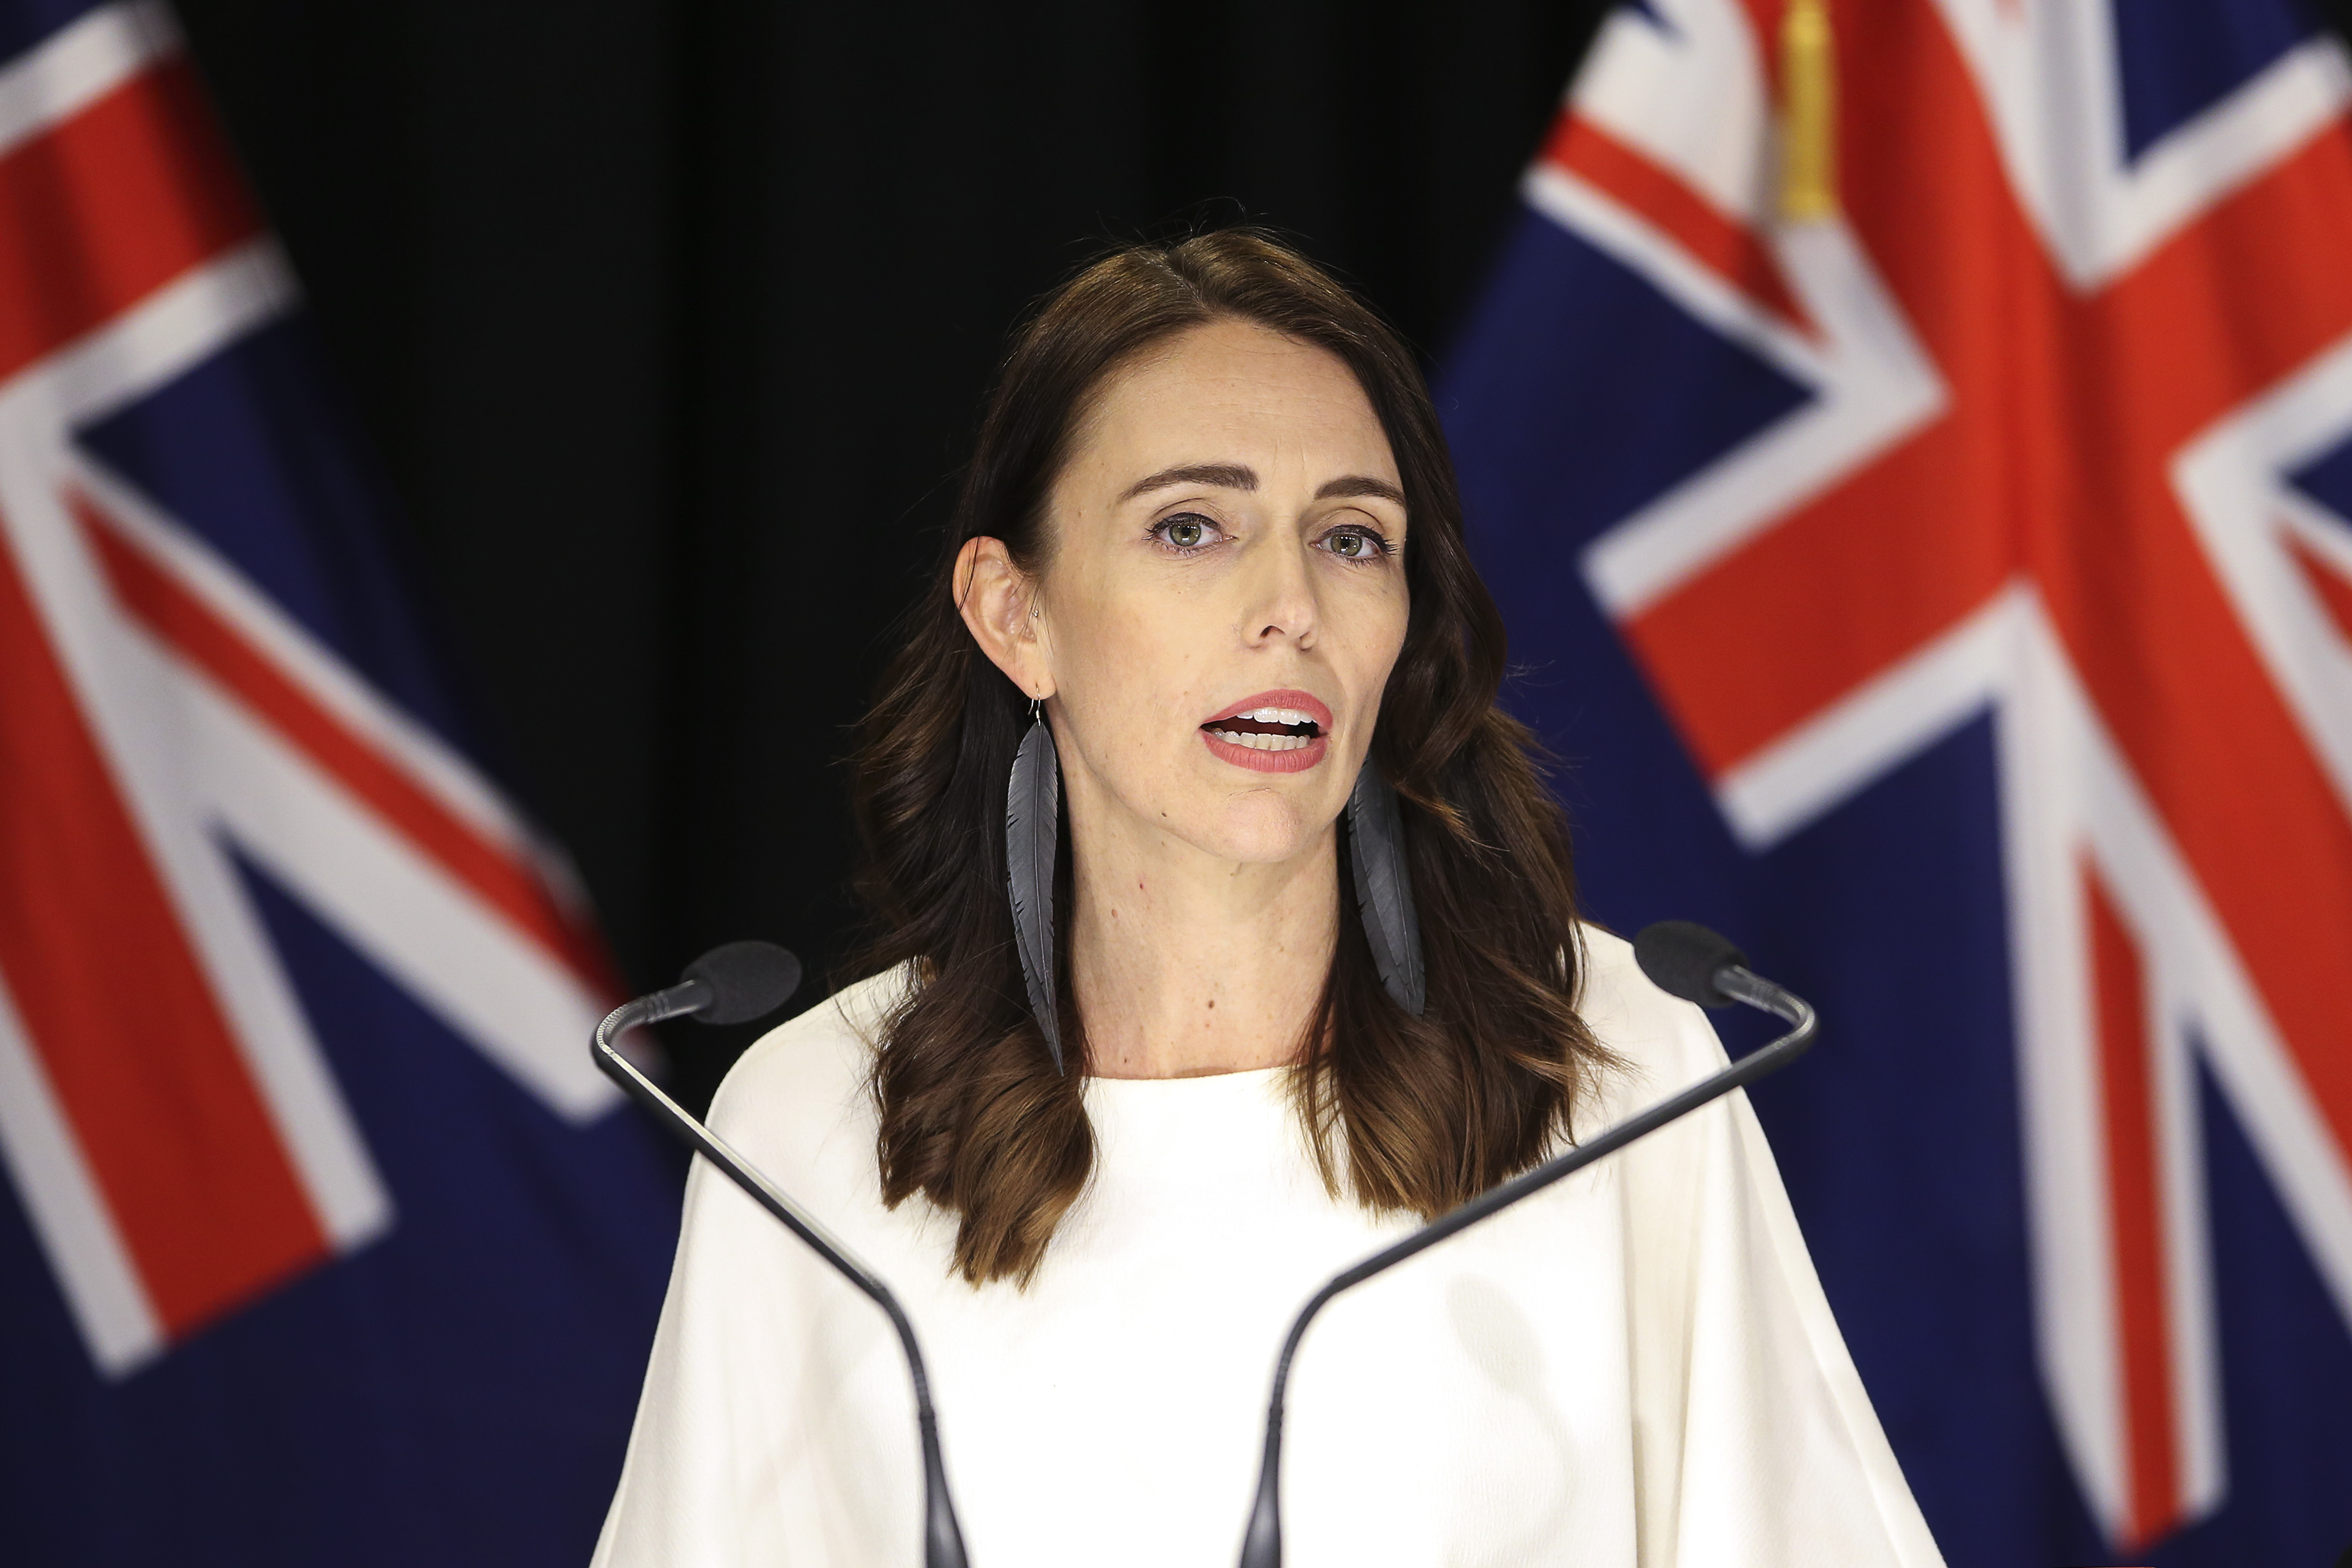 Prime Minister Jacinda Ardern speaks during a press conference on March 09, 2020 in Wellington, New Zealand.